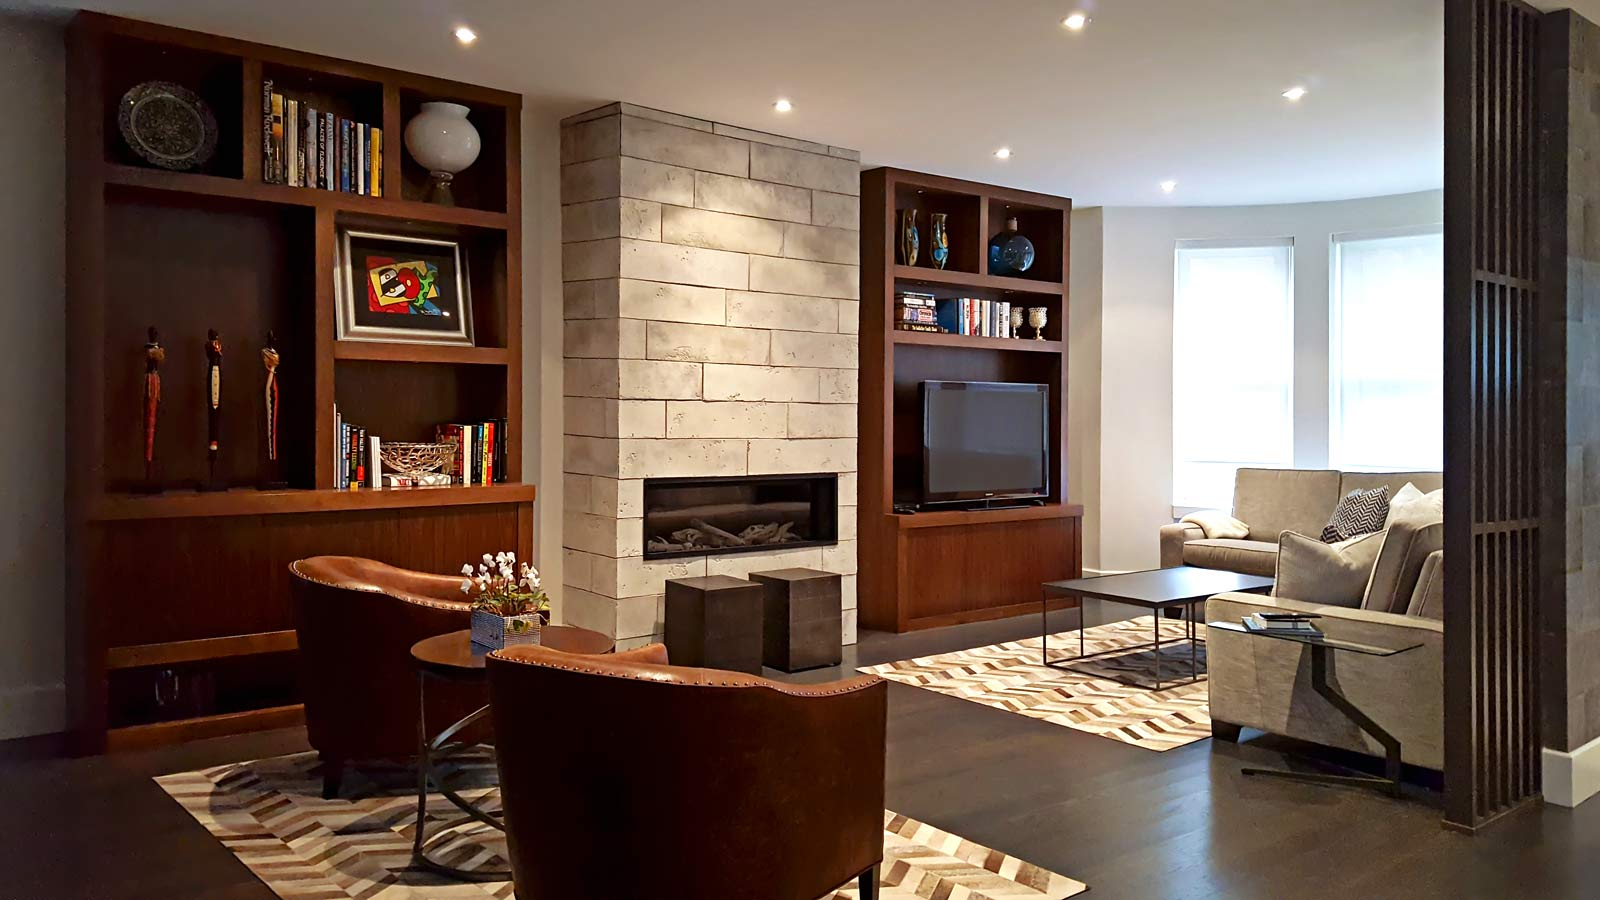 Cindy B Decor Interior Design Montreal Homes and Condos 6